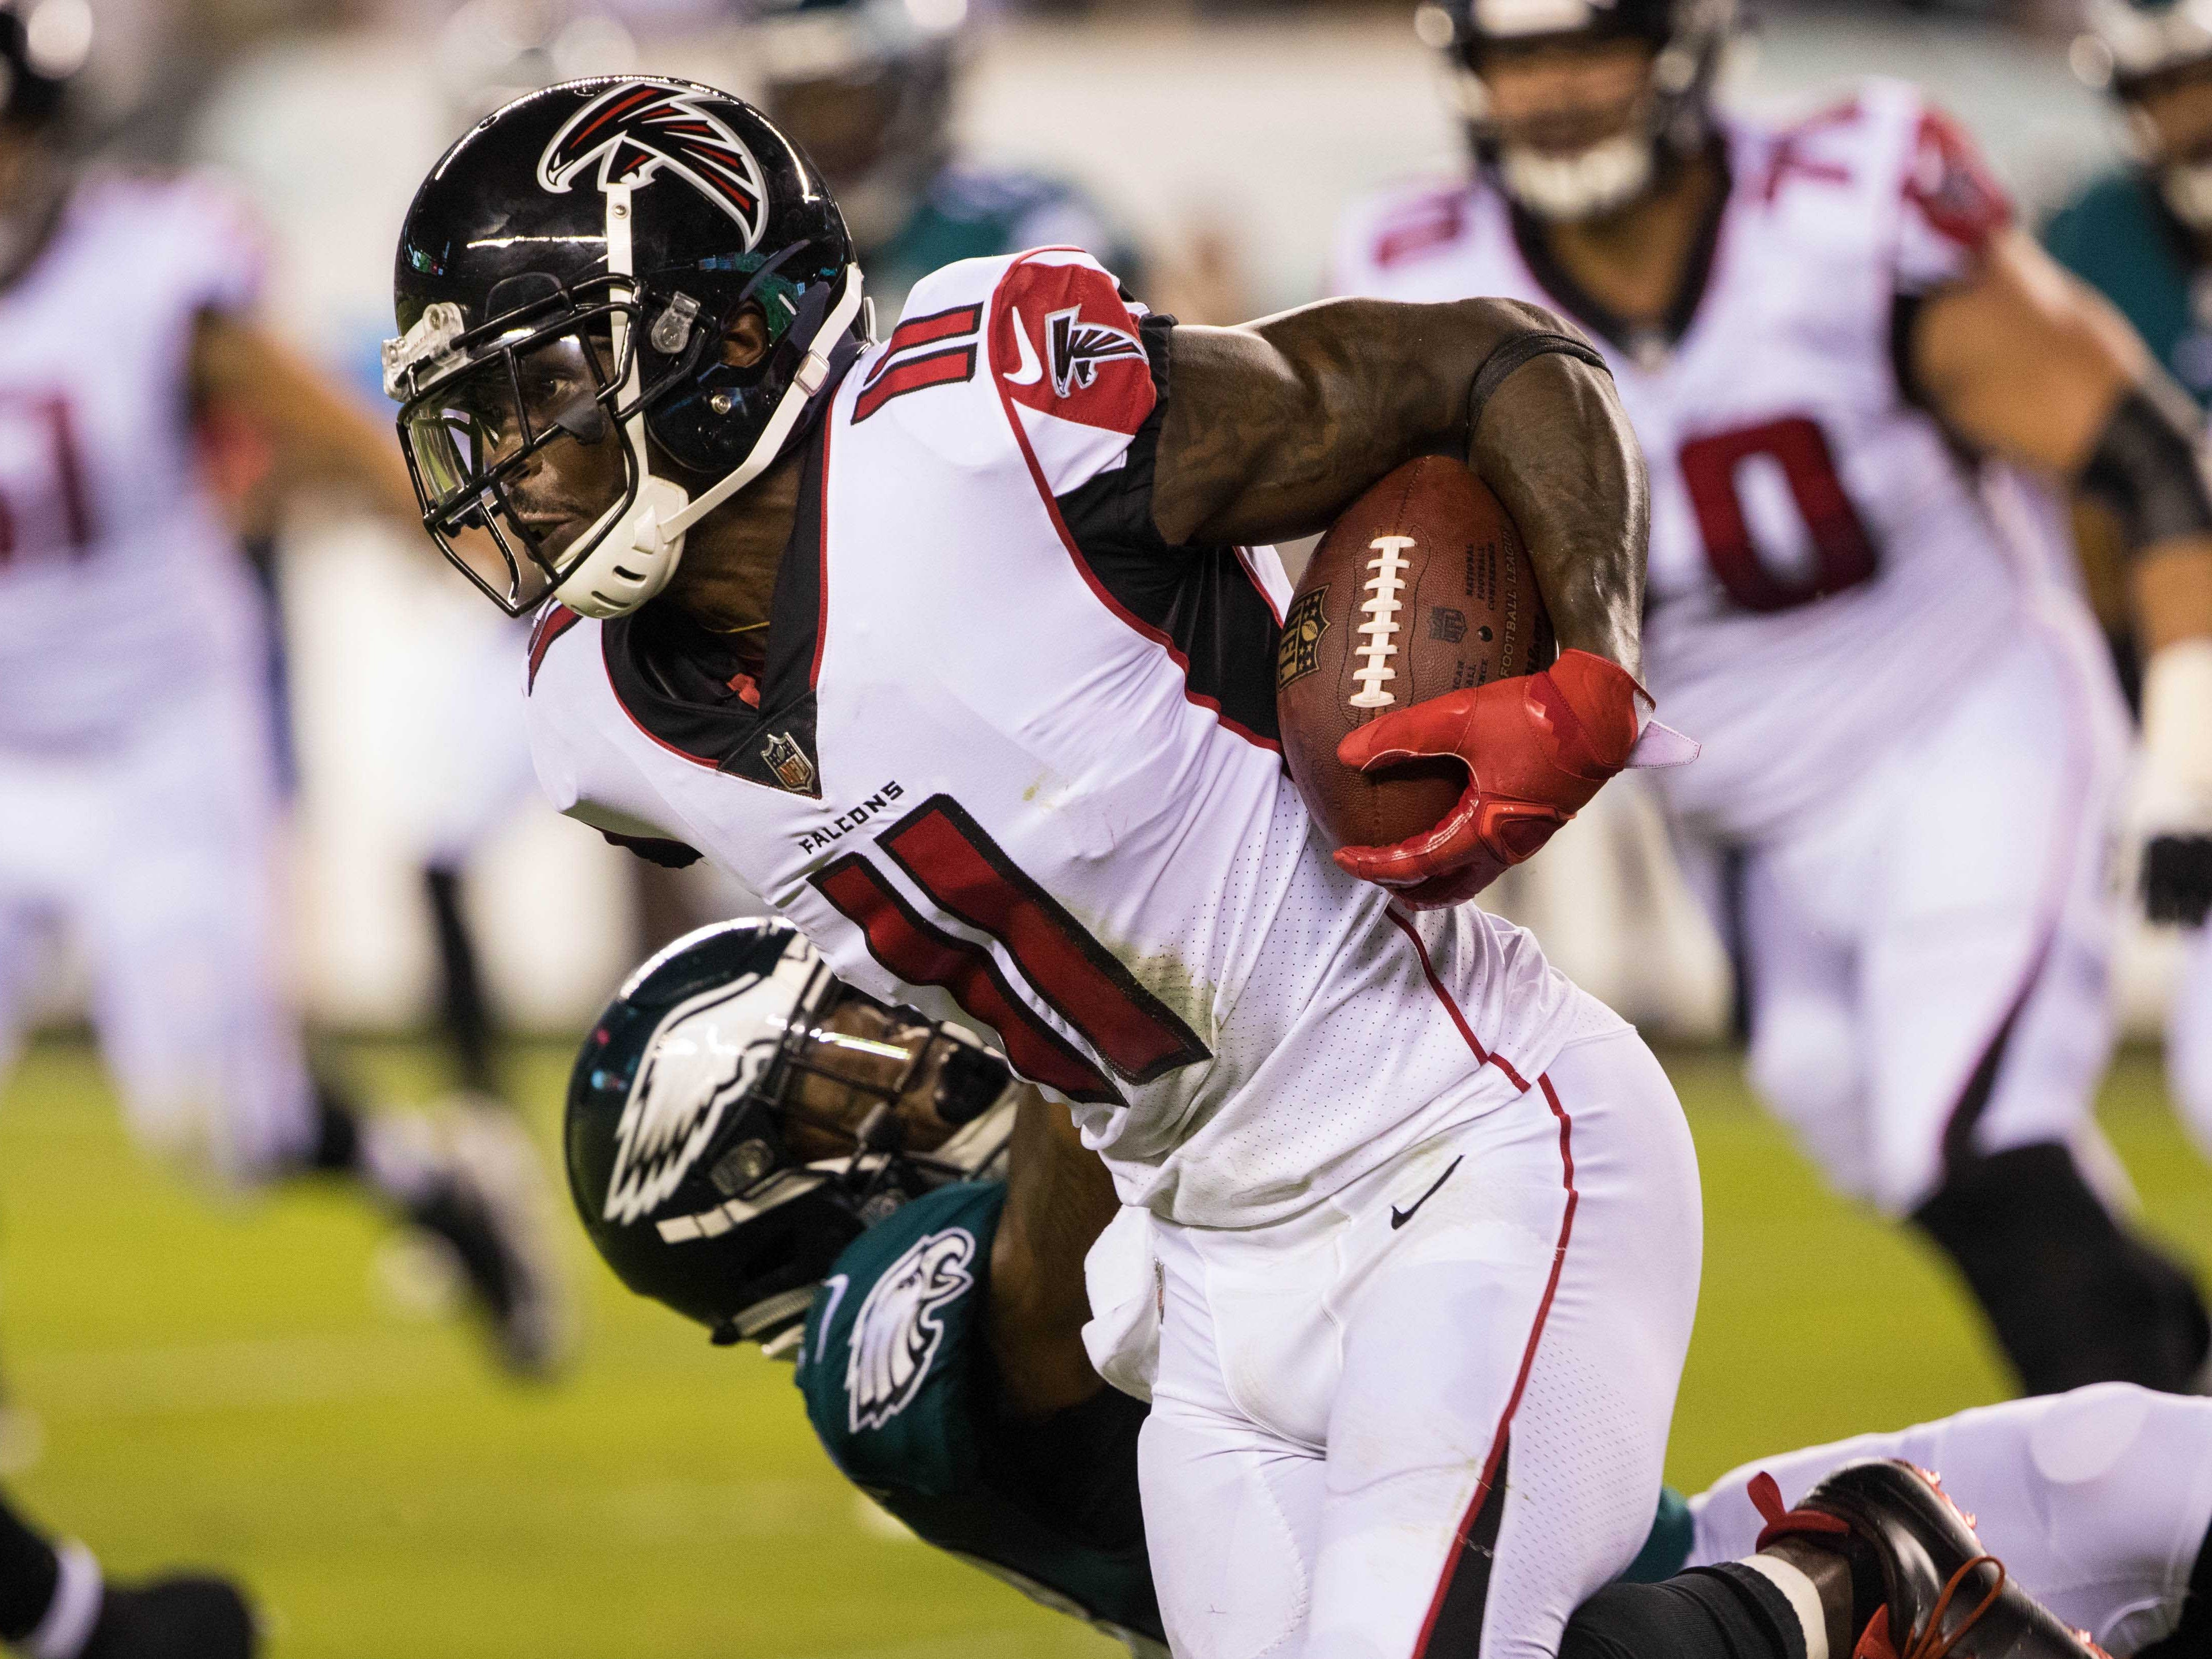 Atlanta Falcons wide receiver Julio Jones breaks the tackle attempt of Philadelphia Eagles defensive back Rodney McLeod during the first quarter at Lincoln Financial Field.